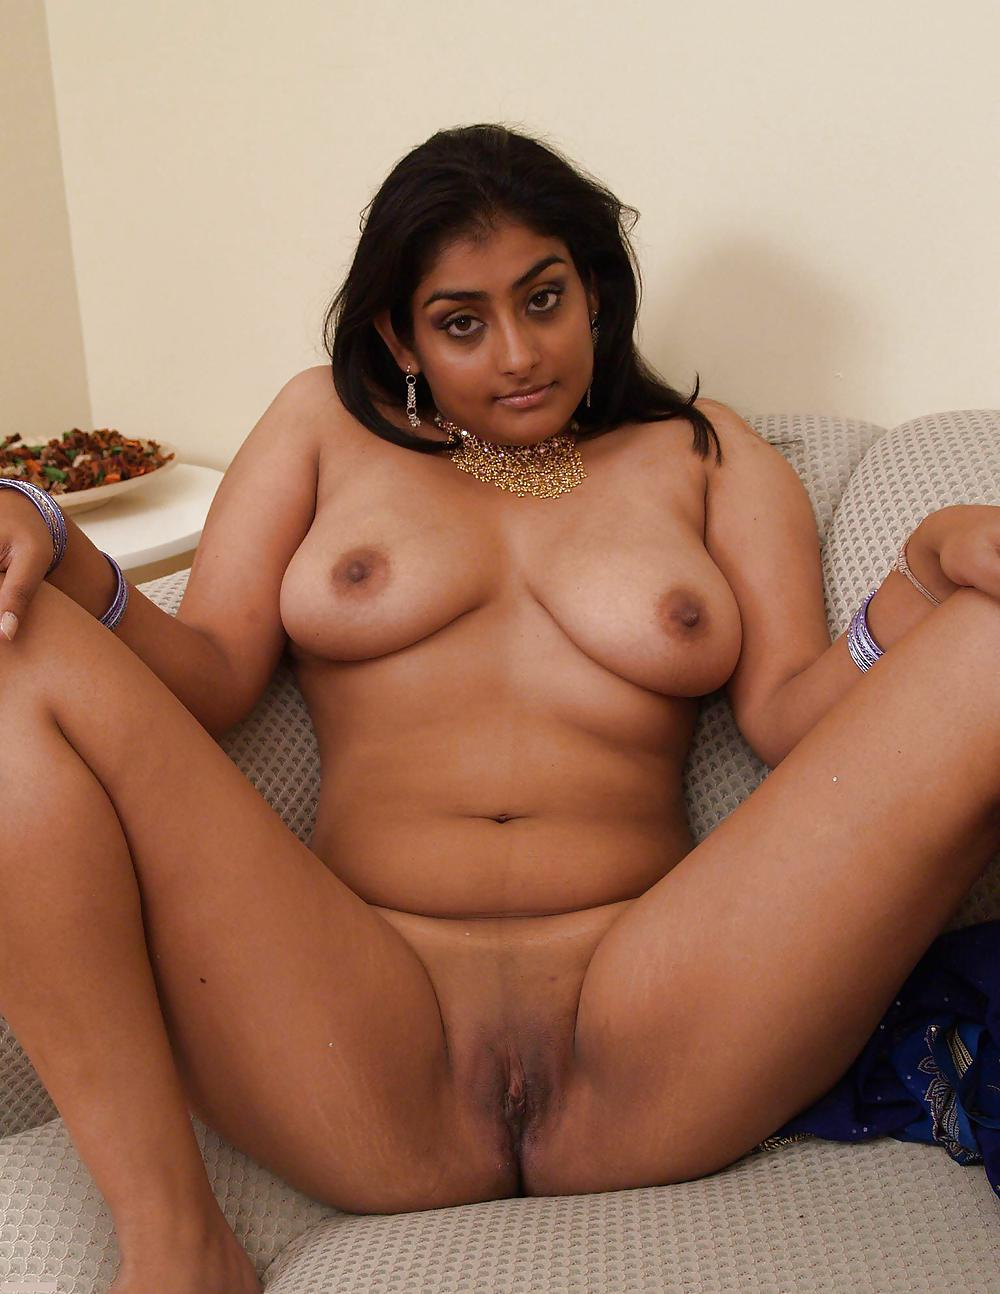 Mom hot photo malayalam porn